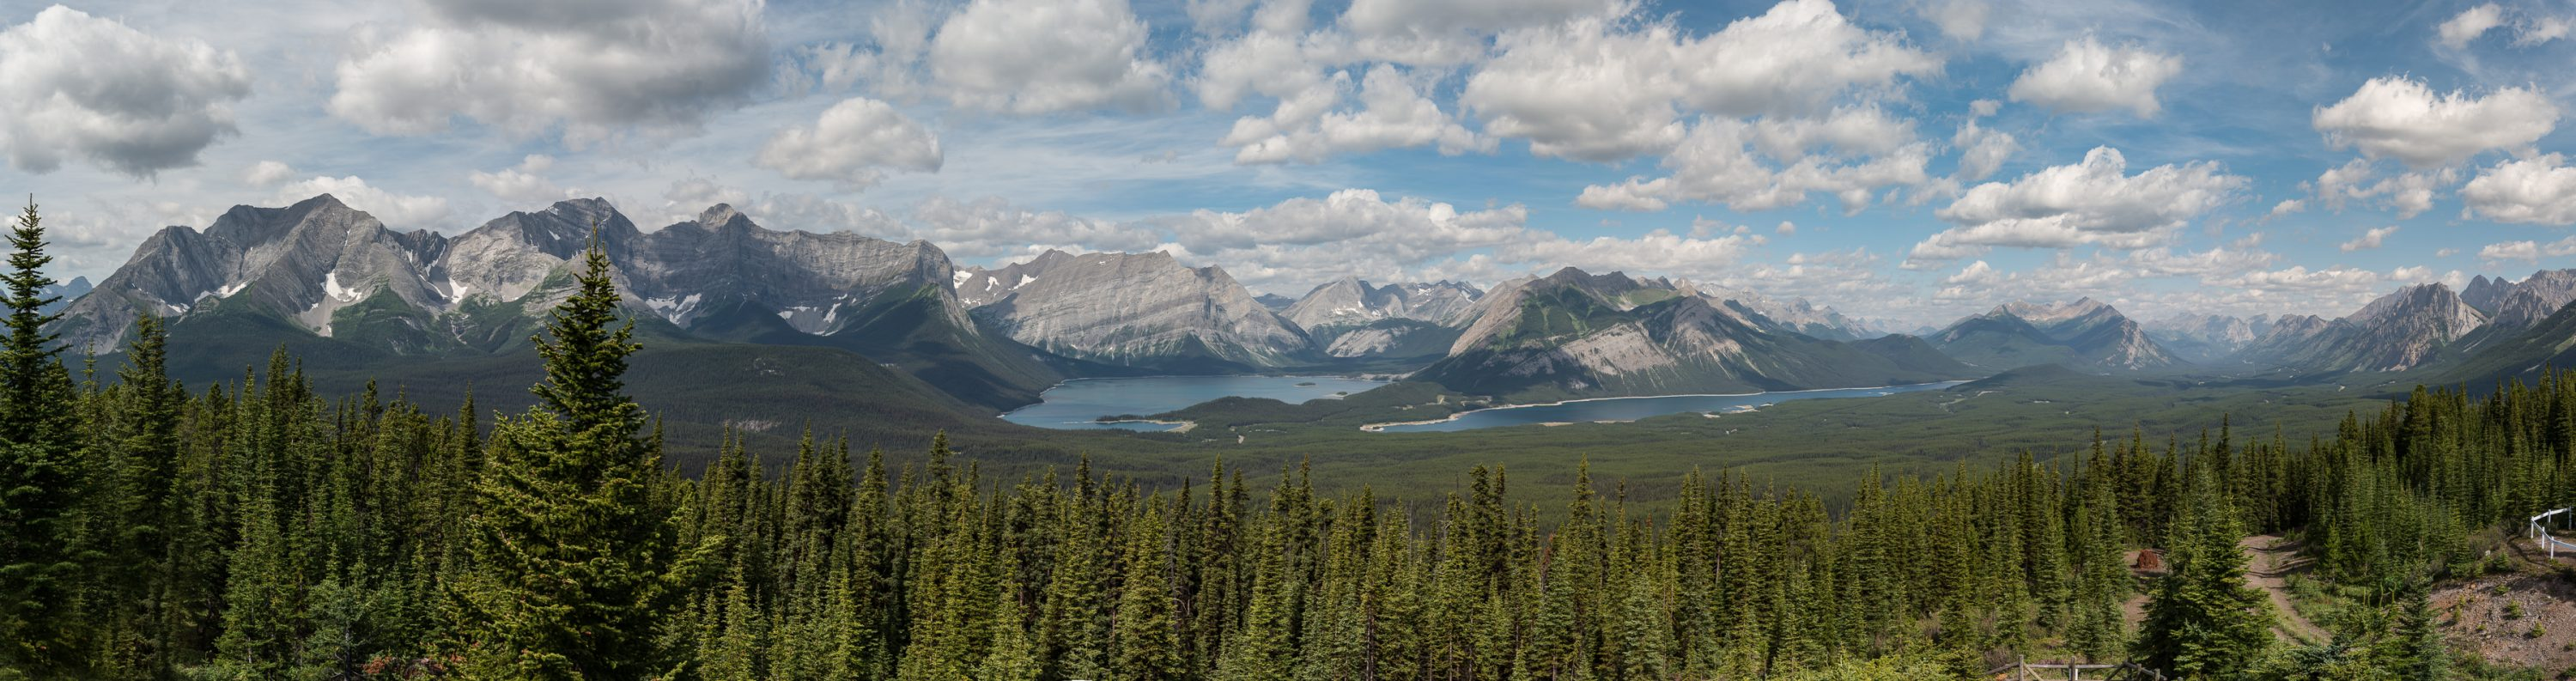 Kananaskis Lakes from the Lookout: MLP 2015